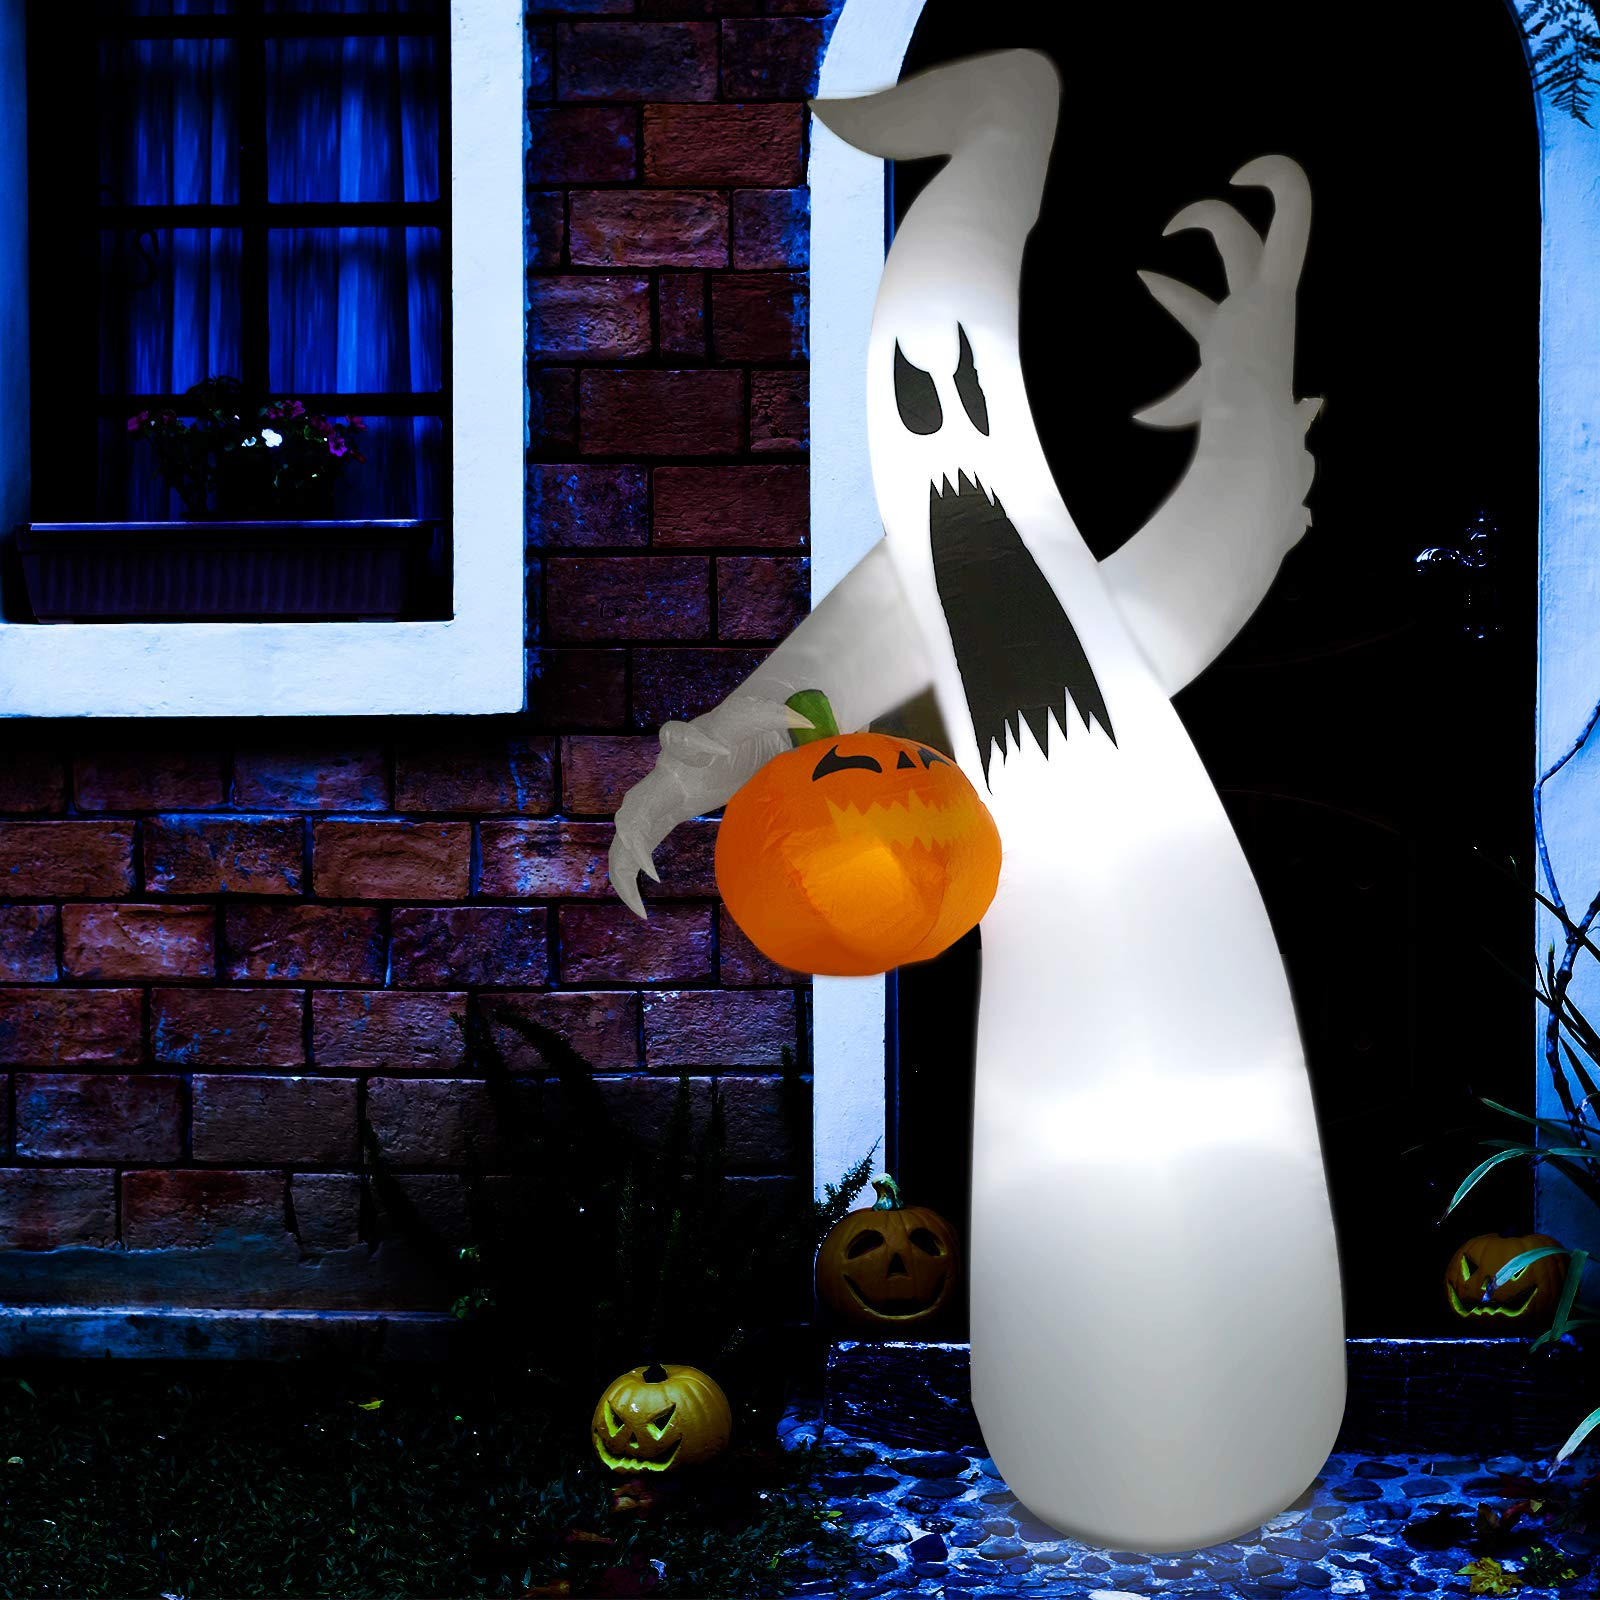 Sunlit 8 Ft Halloween Inflatable Air Blown Ghost with Pumpkin with Blower and Adapter, Lighted for Home Yard Garden Indoor Porch Outdoor Decoration Halloween Party, Trick or Treat Night